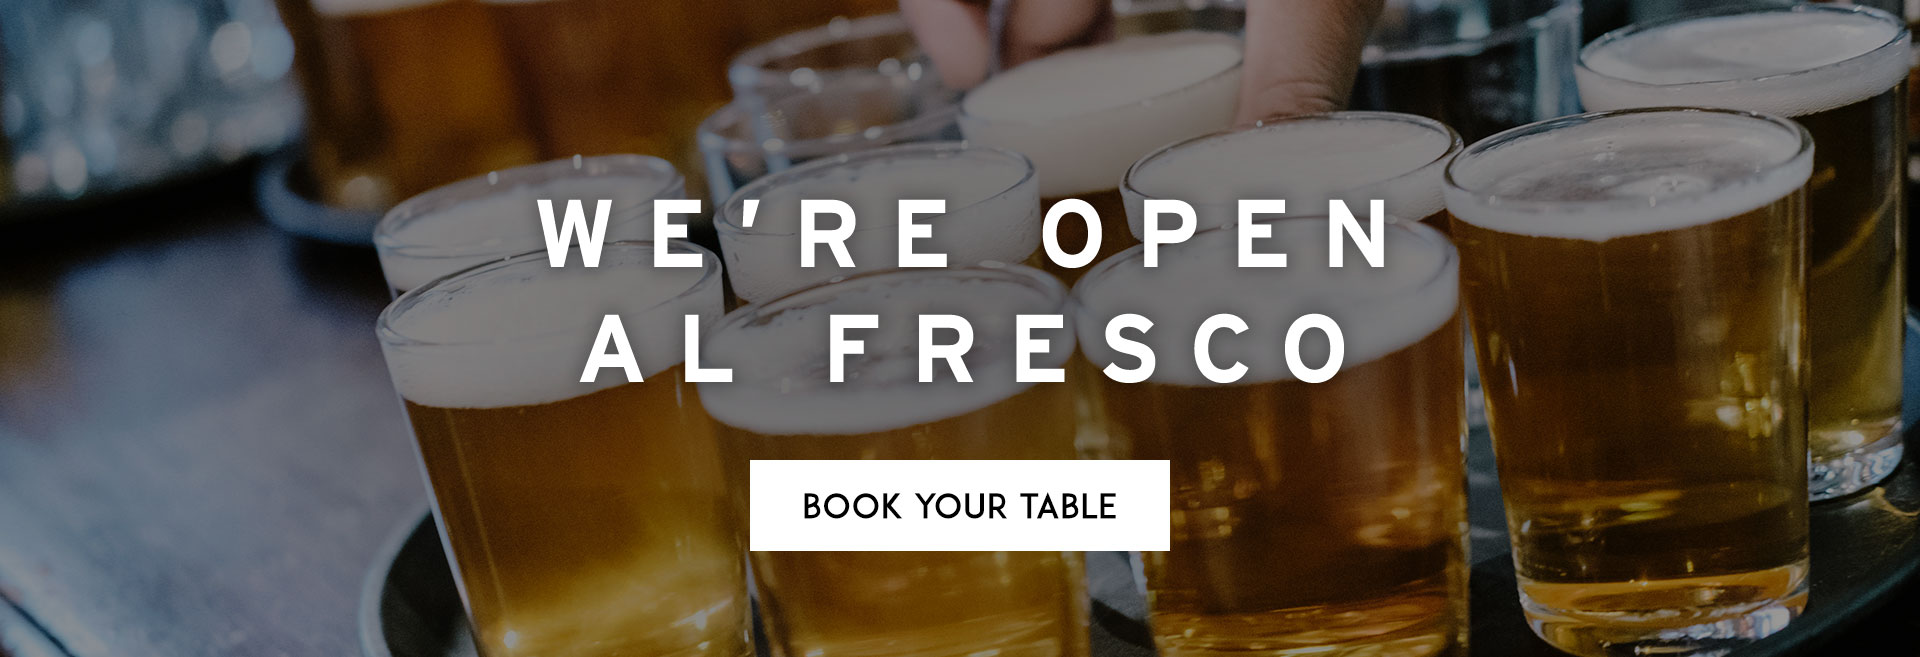 Book Your Table The Lescar